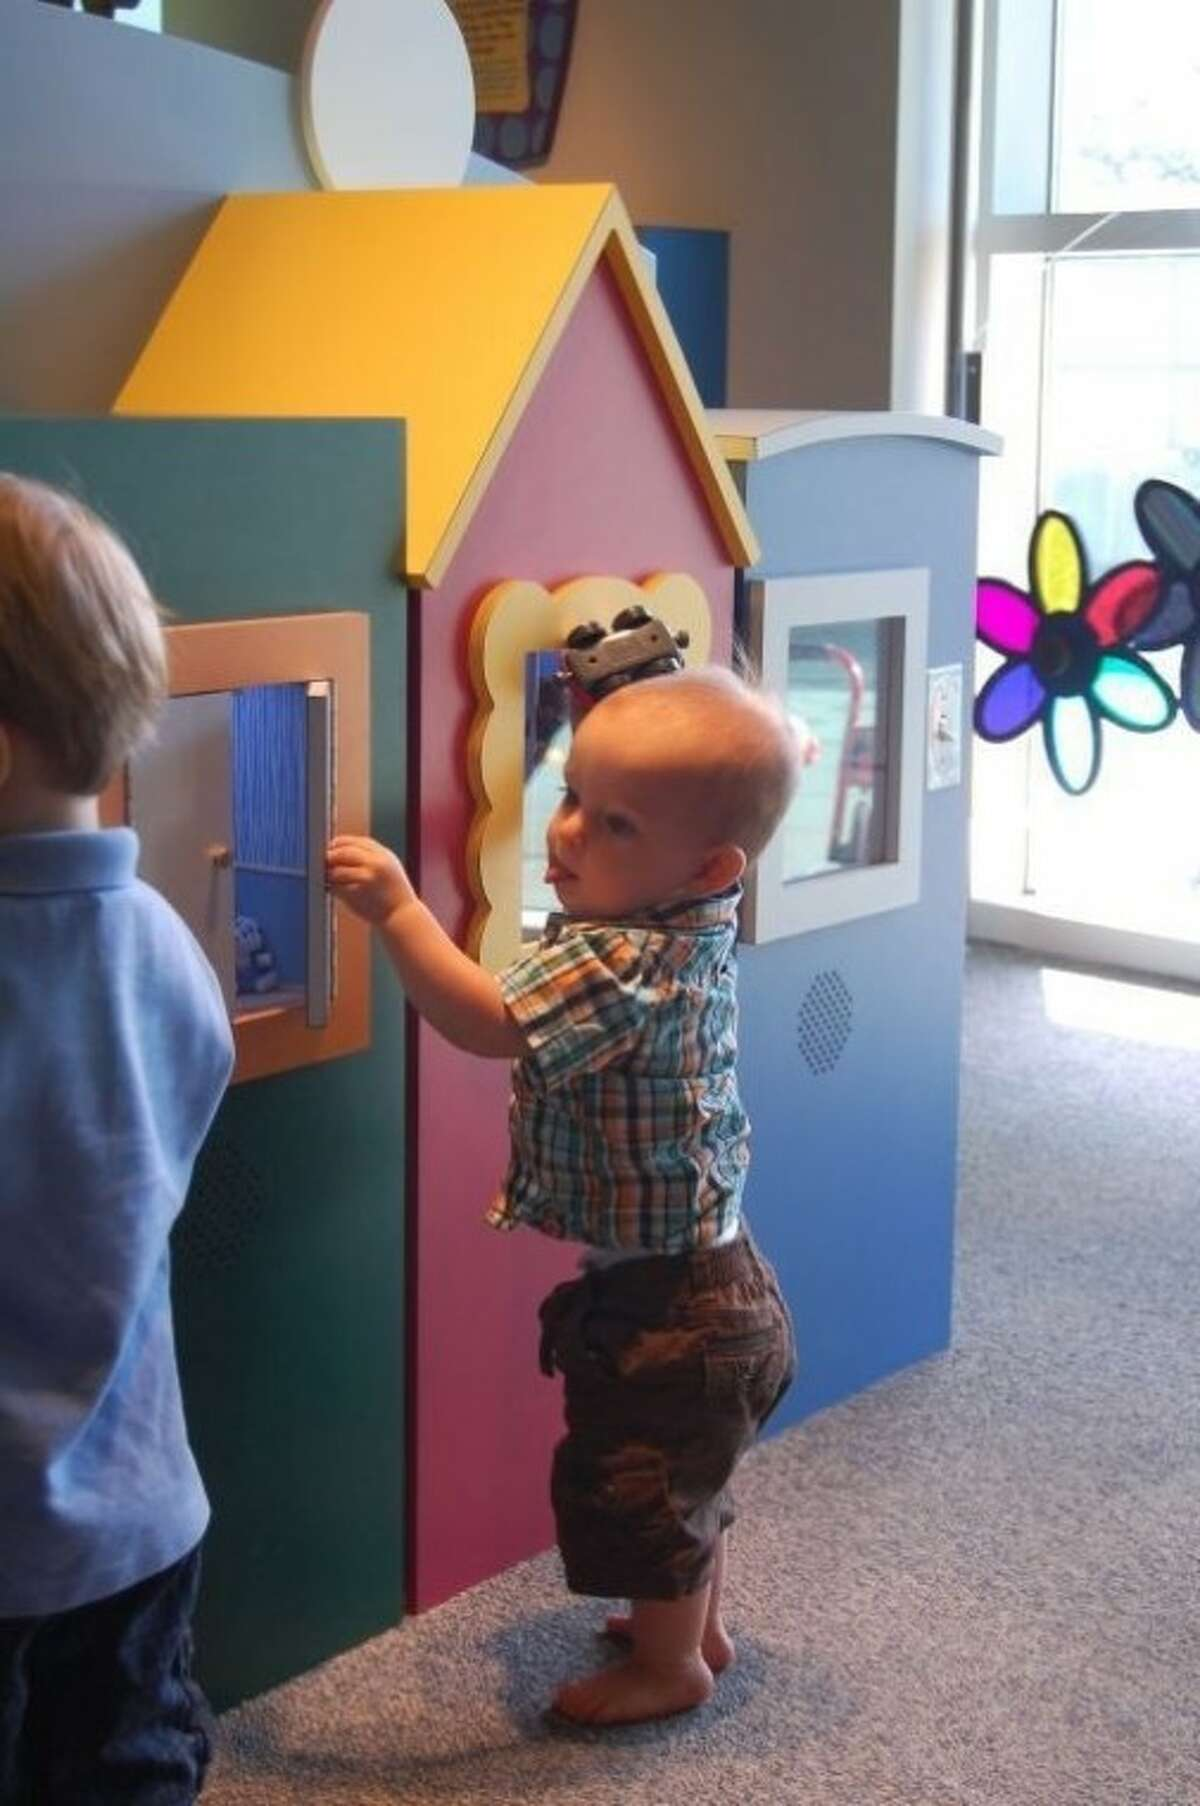 The Children's Museum of Housont features a week of problem-solving activities and idea-discovering at the exclusive Tot Spot exhibit (for children 35 months and under) Aug. 23 -29.